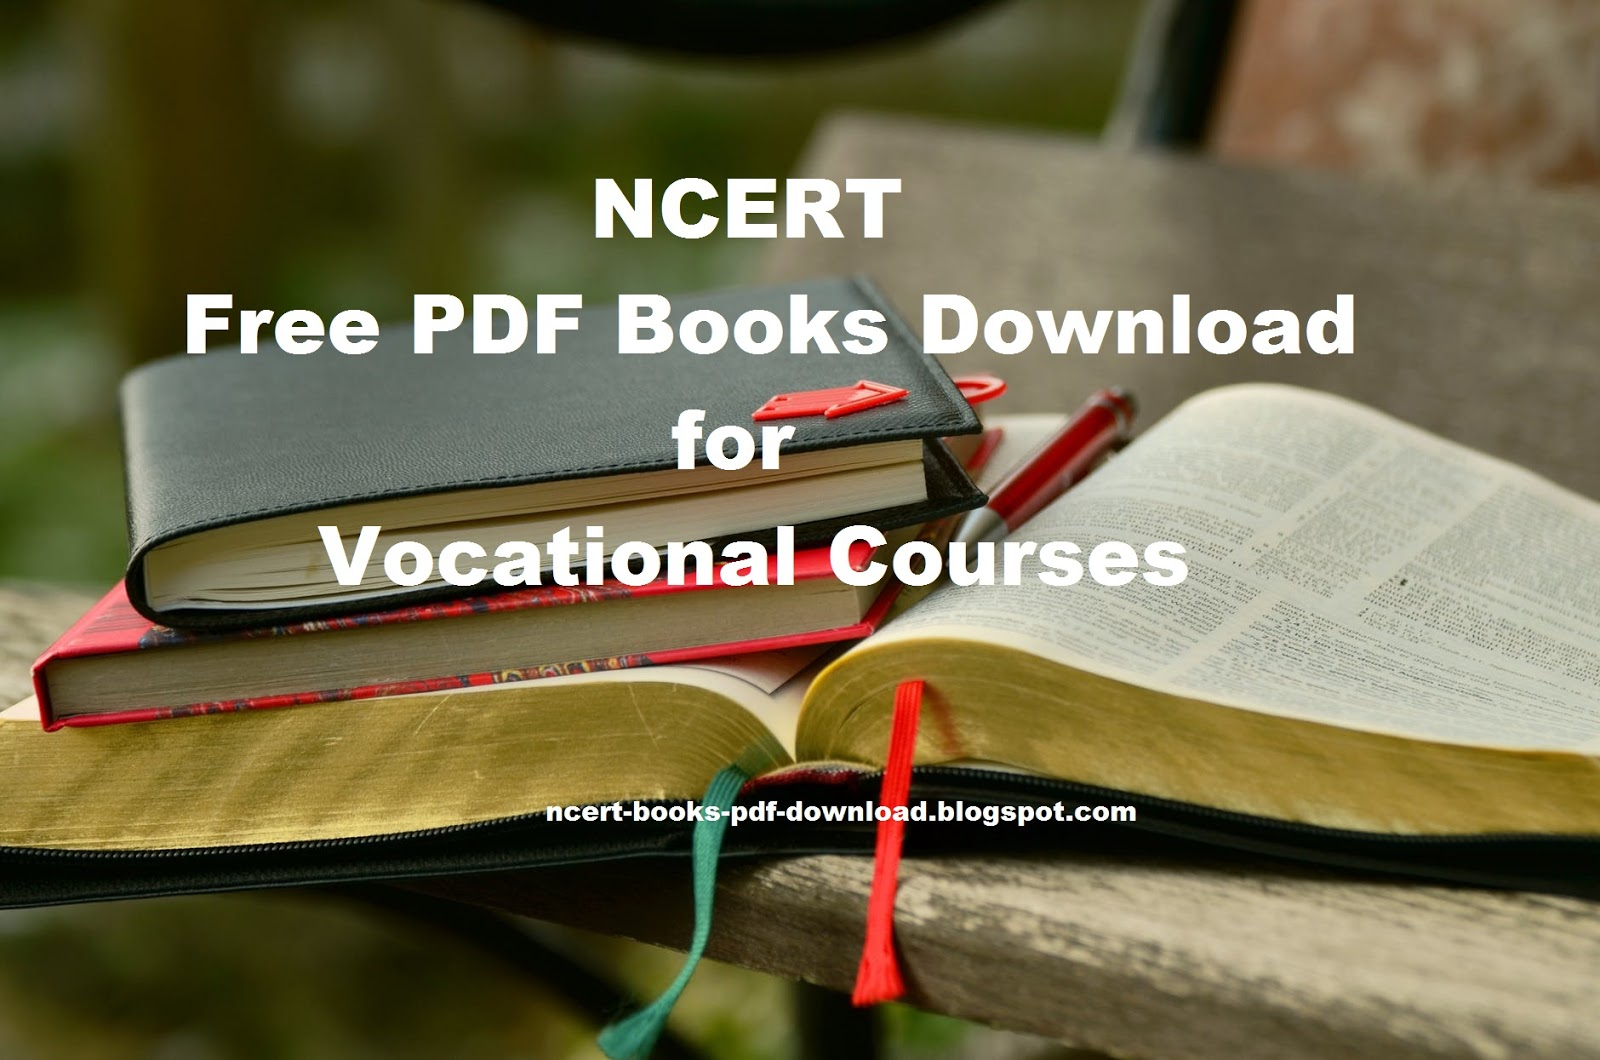 NCERT Free PDF Books Download for Vocational Courses